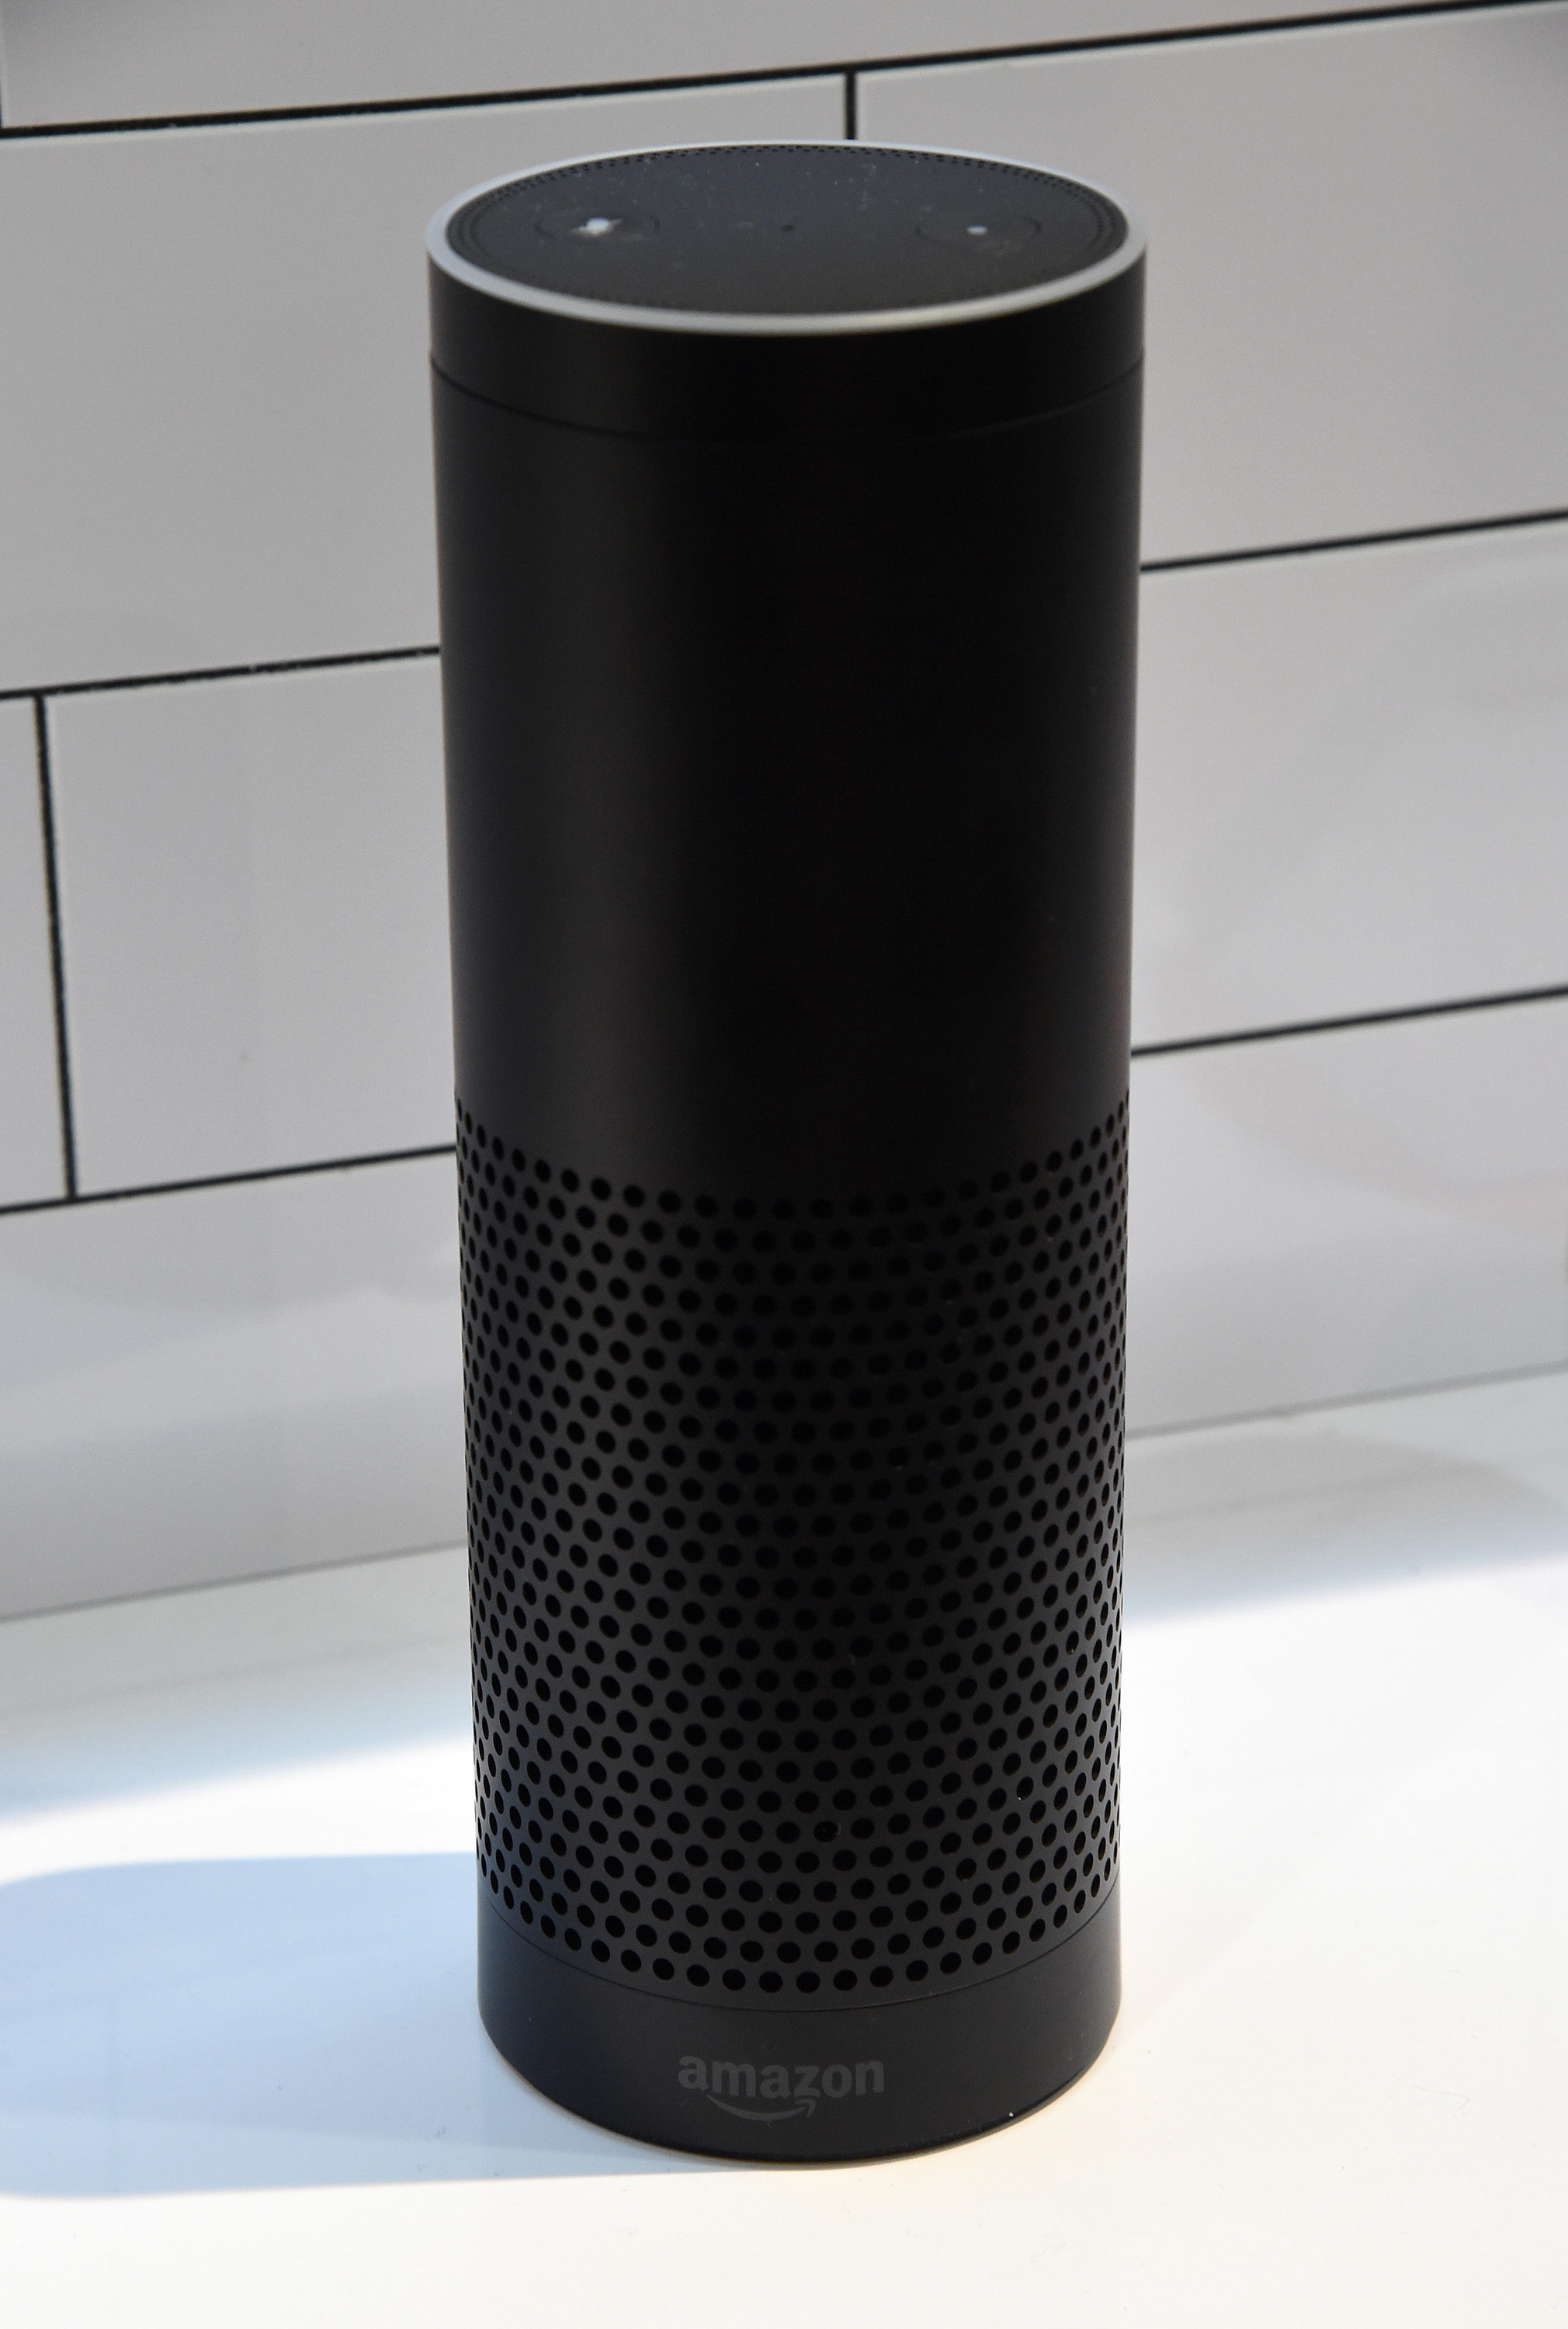 The Amazon Echo is displayed at the Vivint booth at CES 2016 at the Sands Expo and Convention Center on January 7, 2016 in Las Vegas, Nevada.